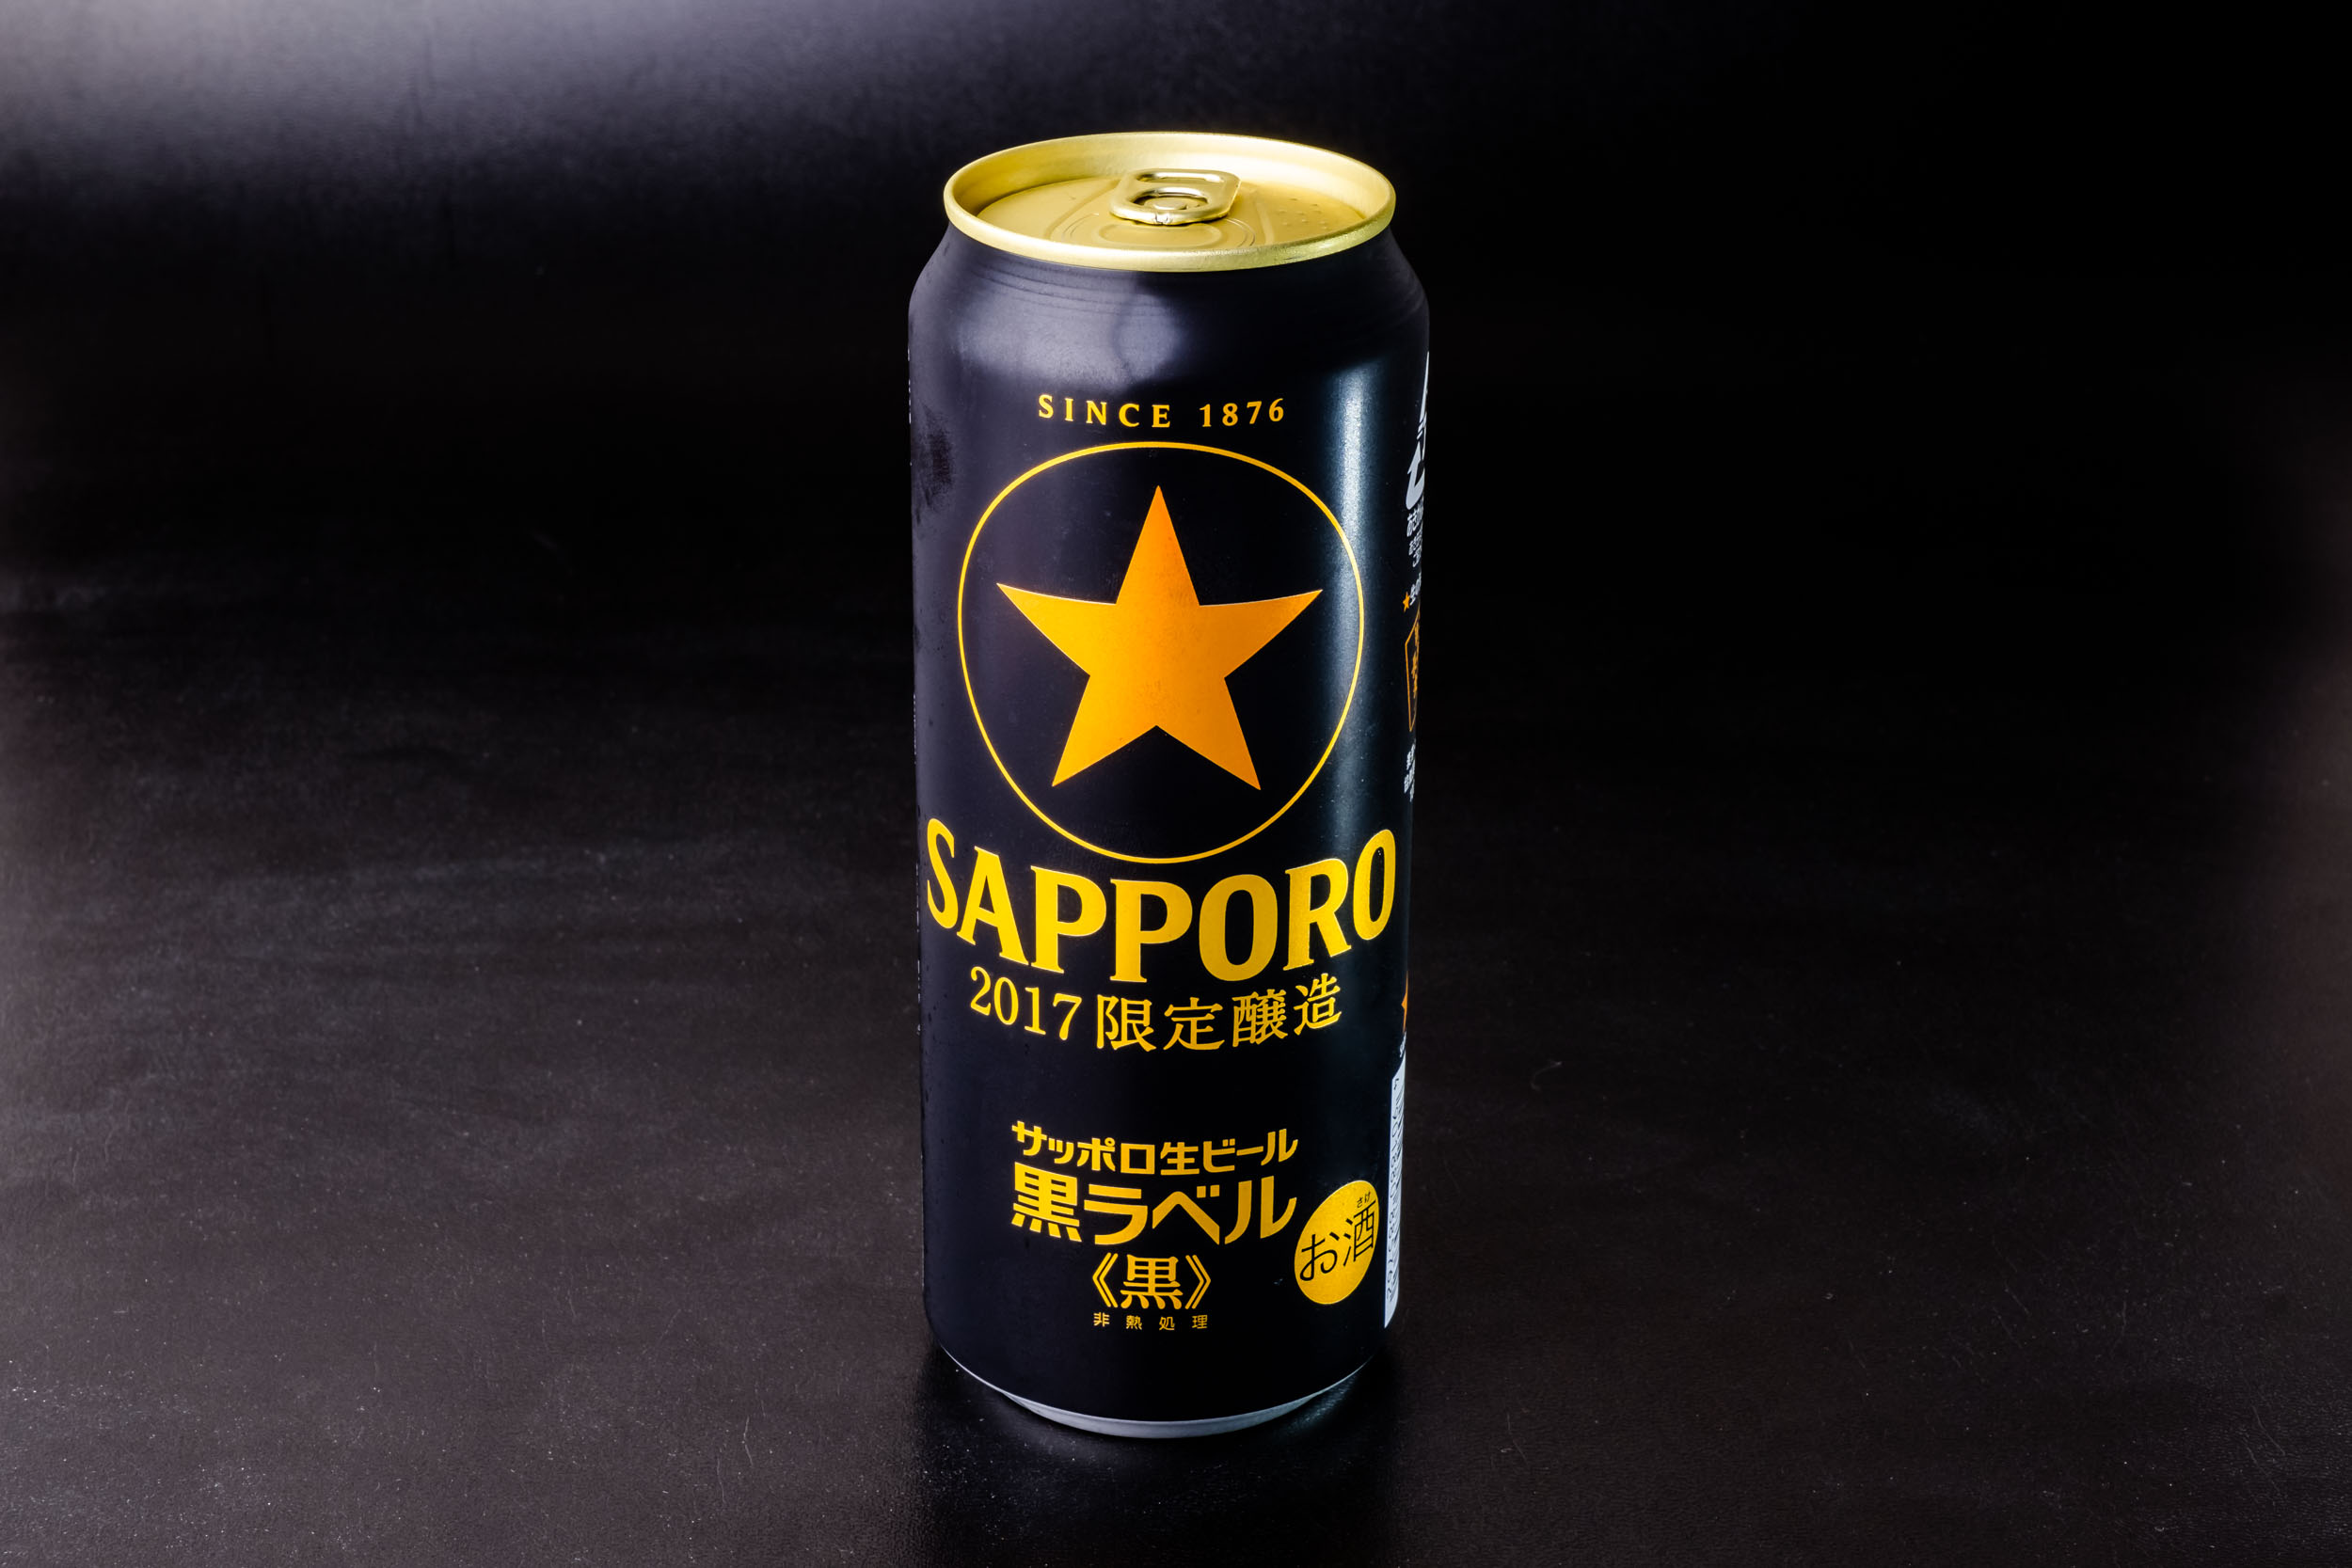 Sapporo Black Label 2017 Limited Edition Black Beer